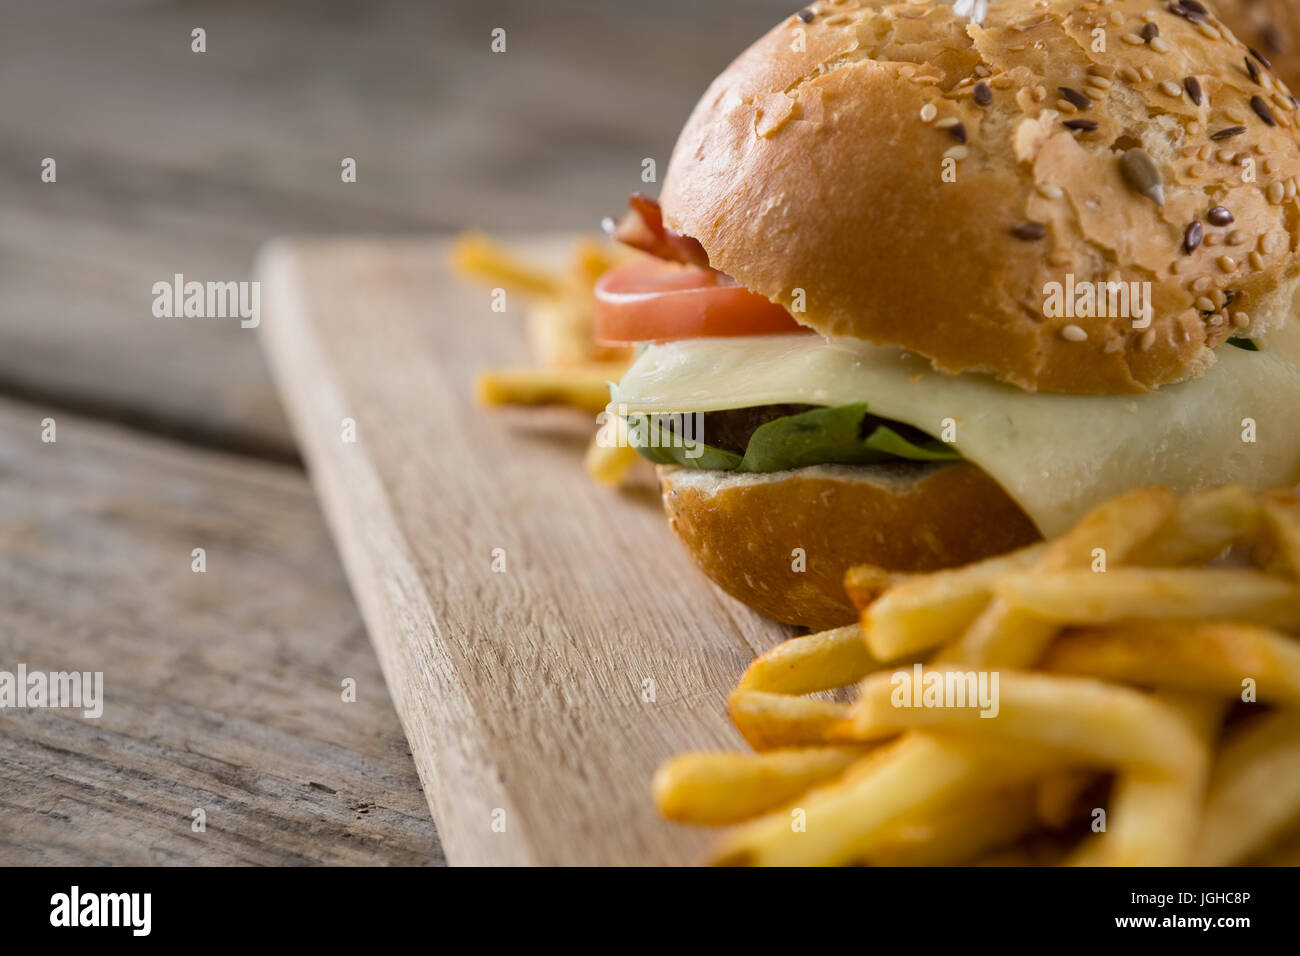 Close up of cheeseburger with french fries served on cutting board Stock Photo